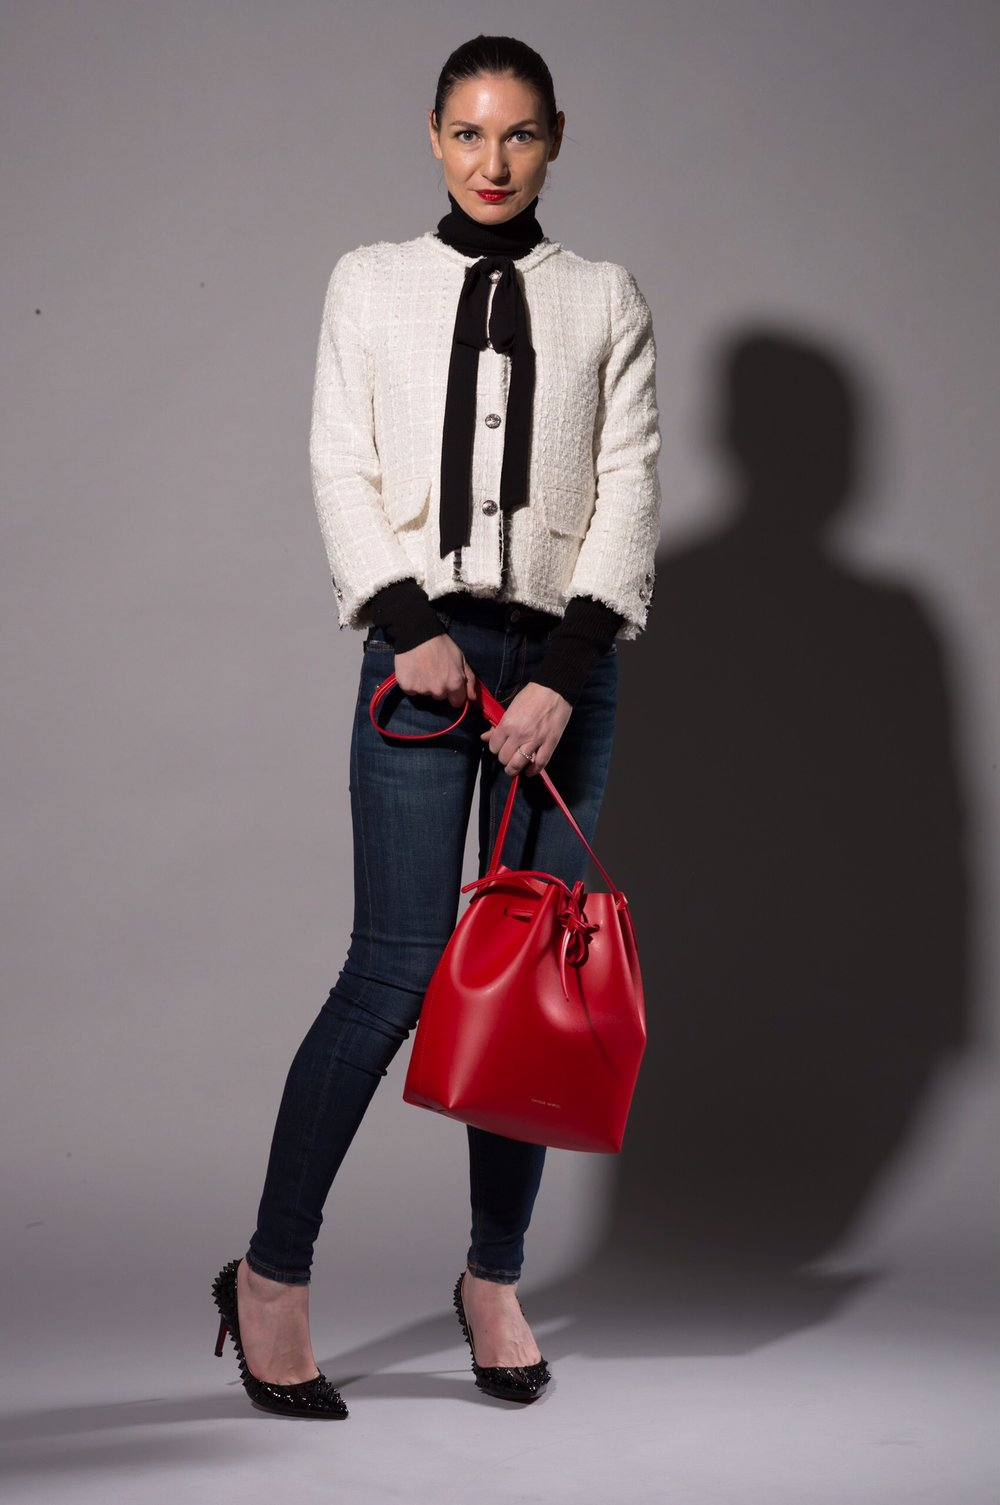 Zara-Jacket-with-Bow.jpg